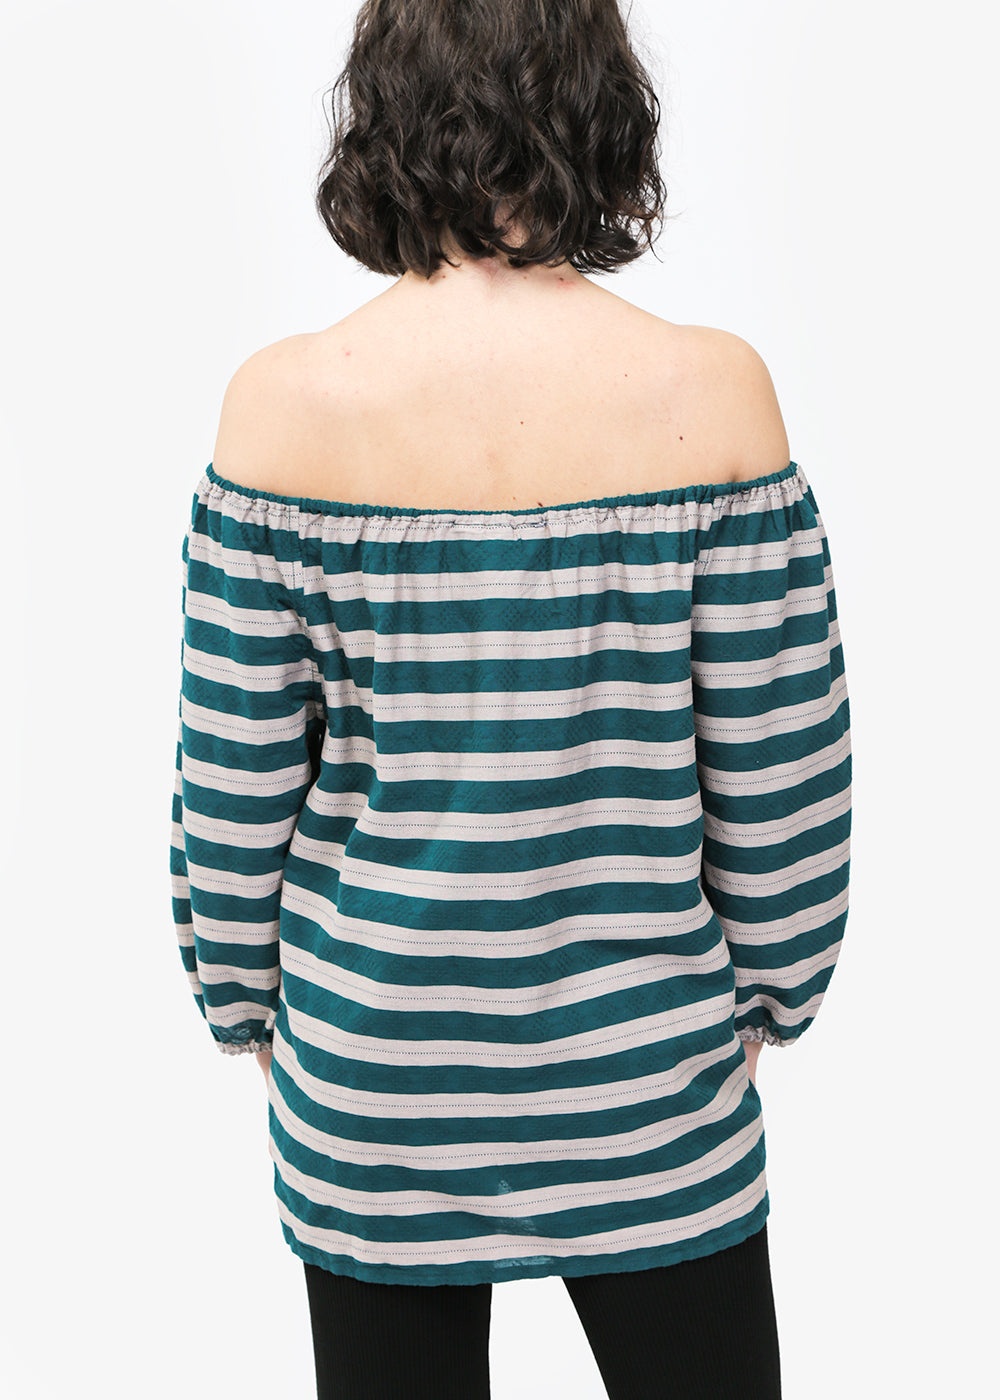 Ace & Jig Martinique Lucia Top — Shop sustainable fashion and slow fashion at New Classics Studios